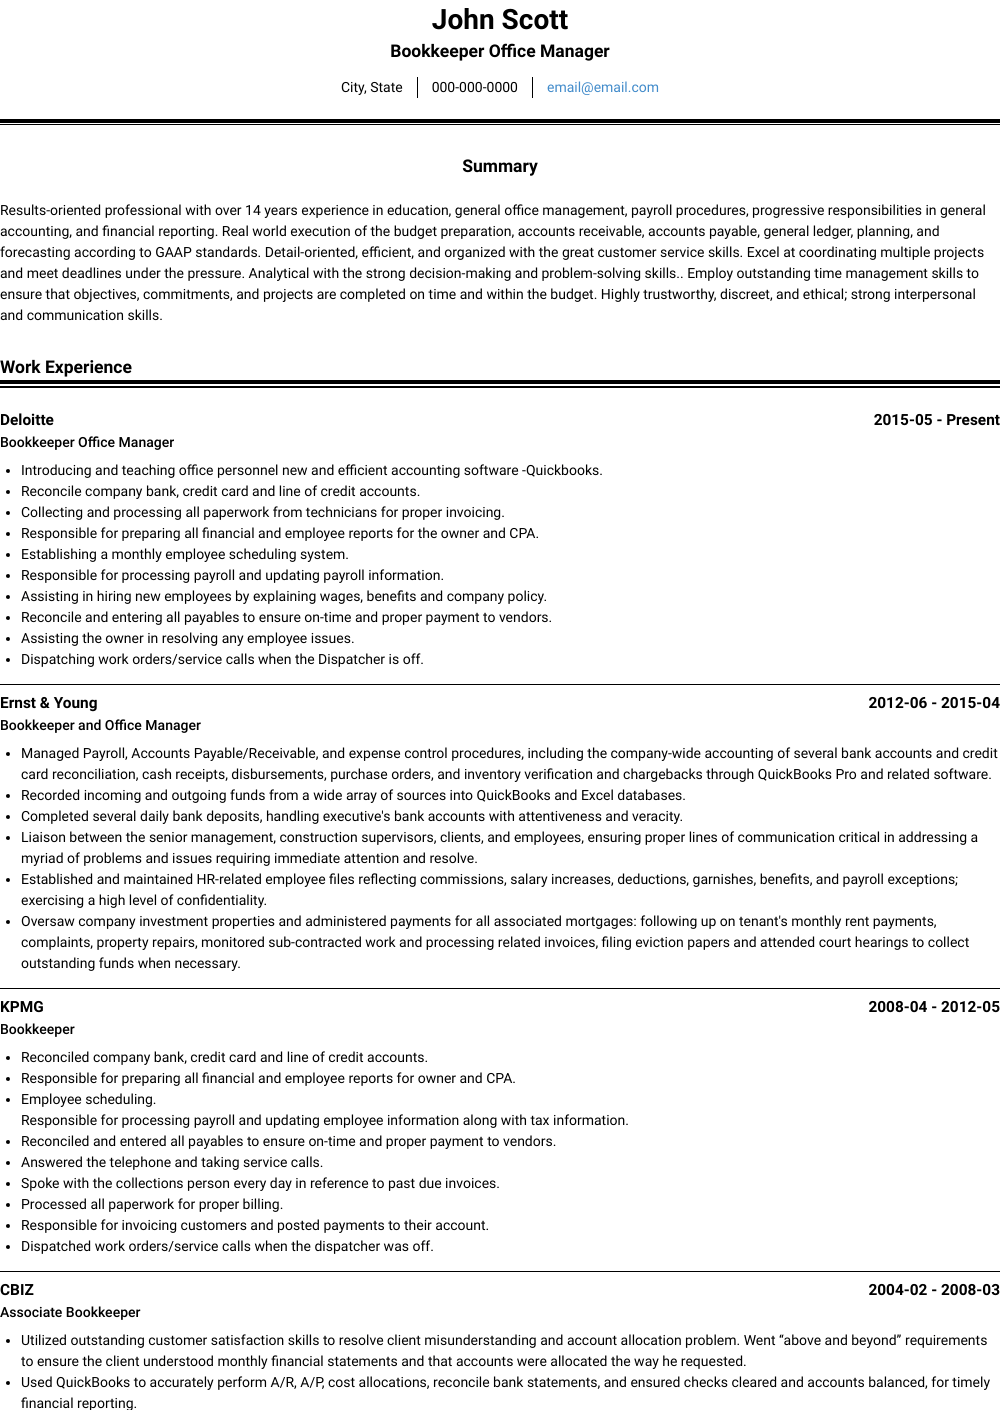 Bookkeeper Office Manager Resume Sample and Template